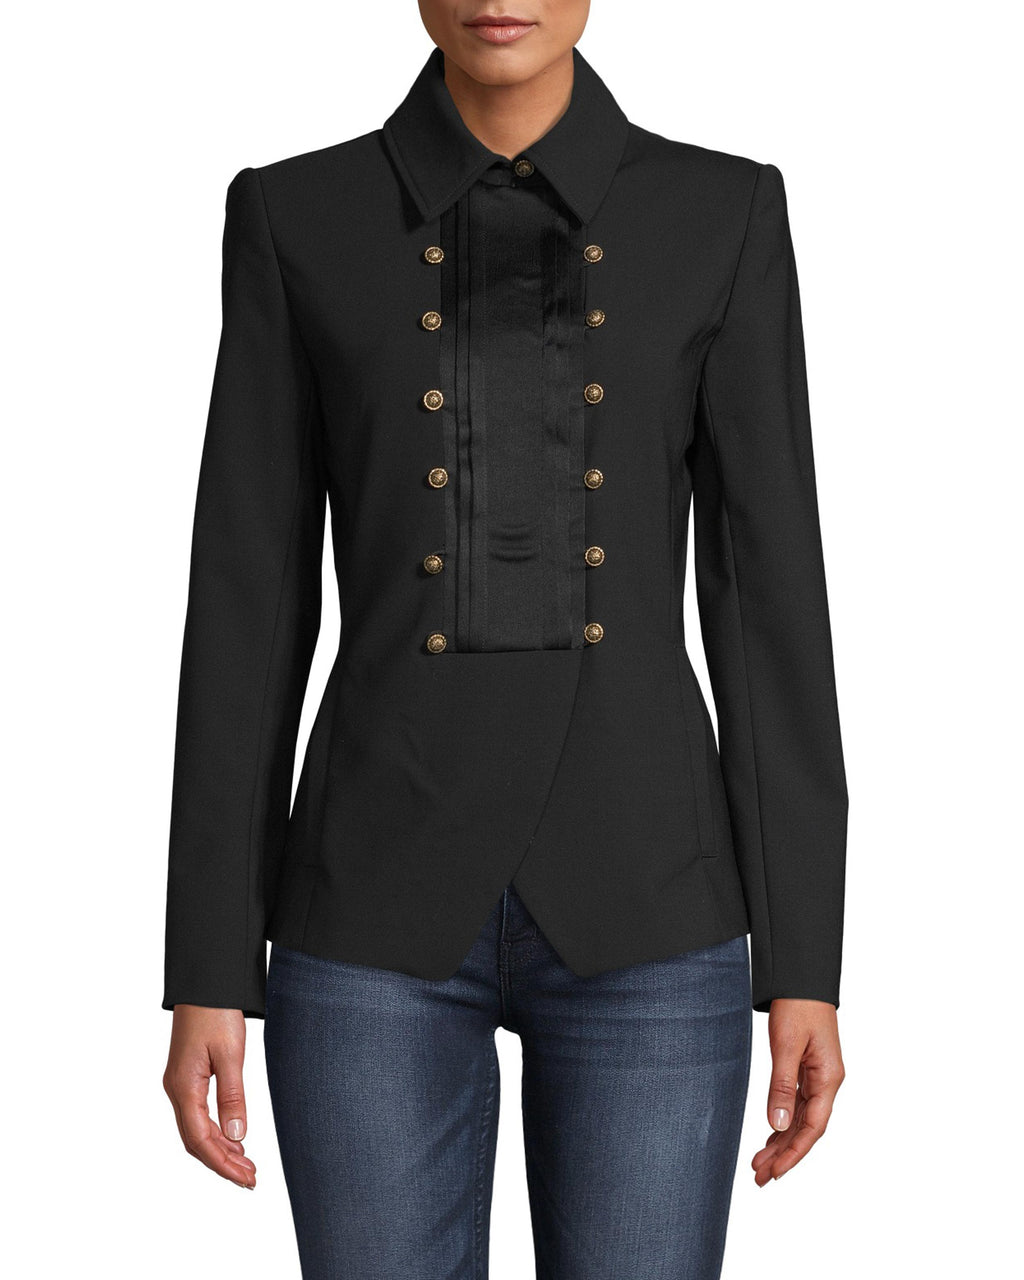 CJ18265 - TUXEDO DETAIL WOOL BLAZER - outerwear - jackets - No more boring blazers. This classic silhouette is updated with a tuxedo front with matte gold ornate buttons and silk details. Add 1 line break Stylist tip: Pair with black pants and a printed top like on our Fall 2020 runway.